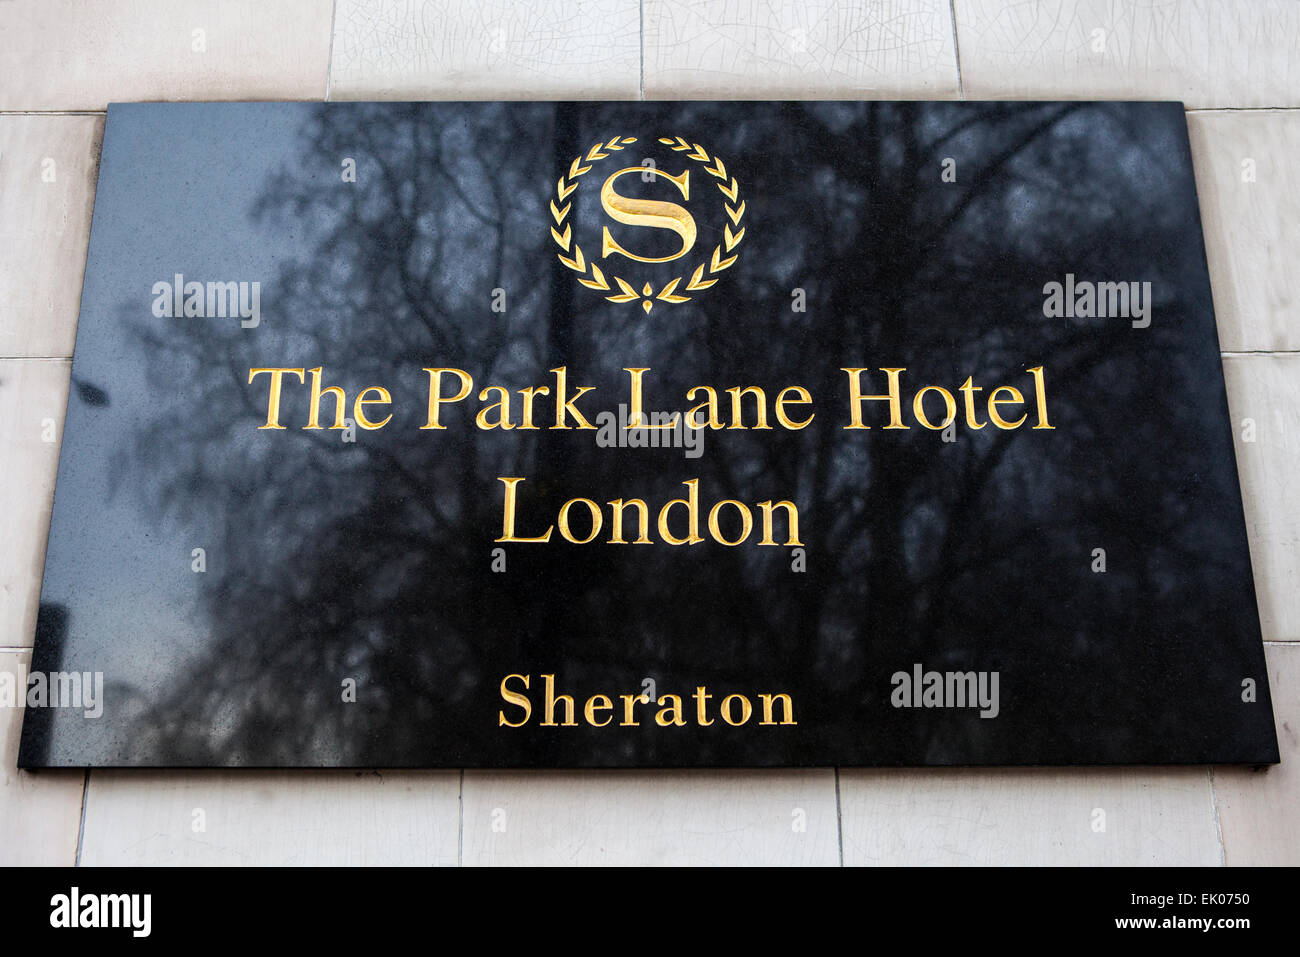 LONDON, UK - APRIL 1ST 2015: The plaque next to the entrance of The Park Lane Hotel located on Piccadilly in London - Stock Image